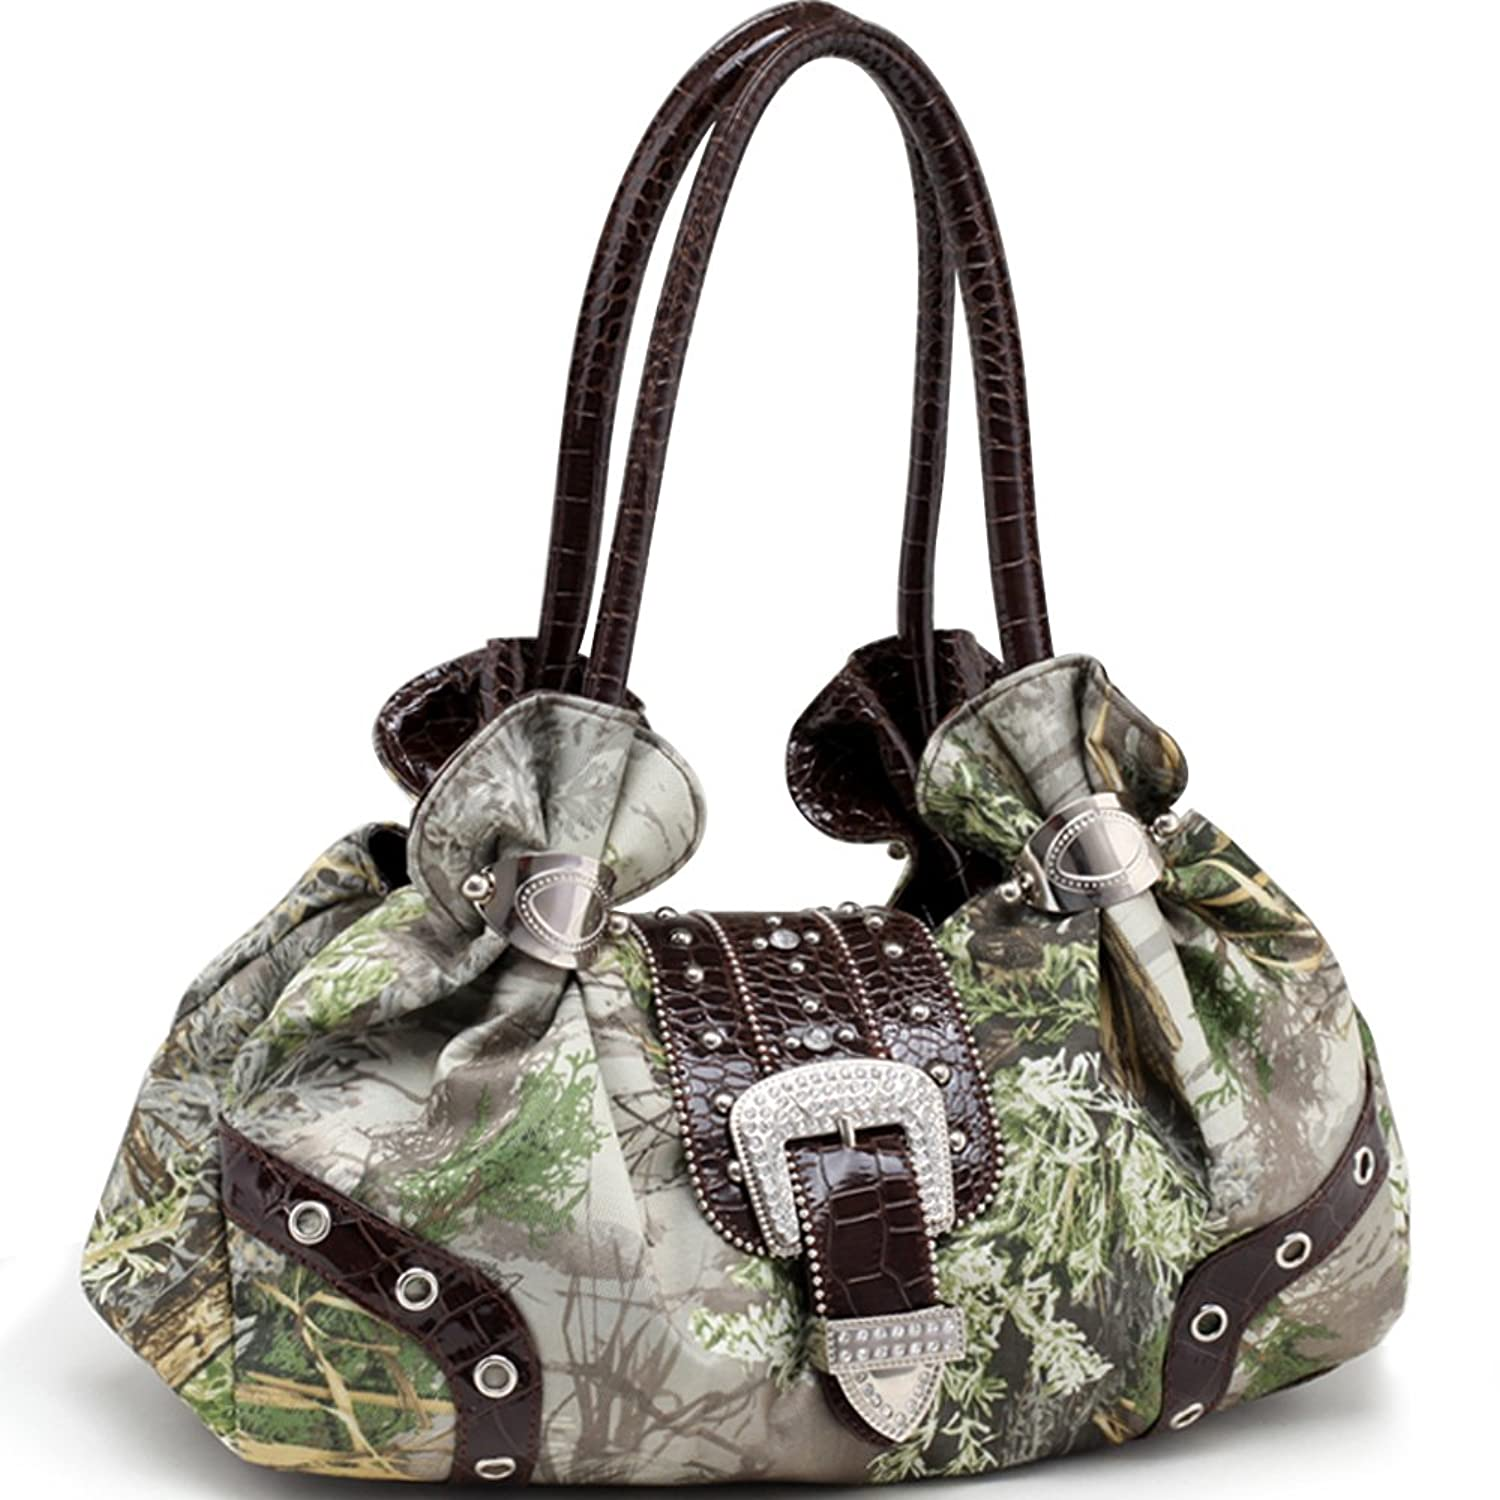 Realtree Camouflage Shoulder Bag w/ Rhinestone Buckle Accent